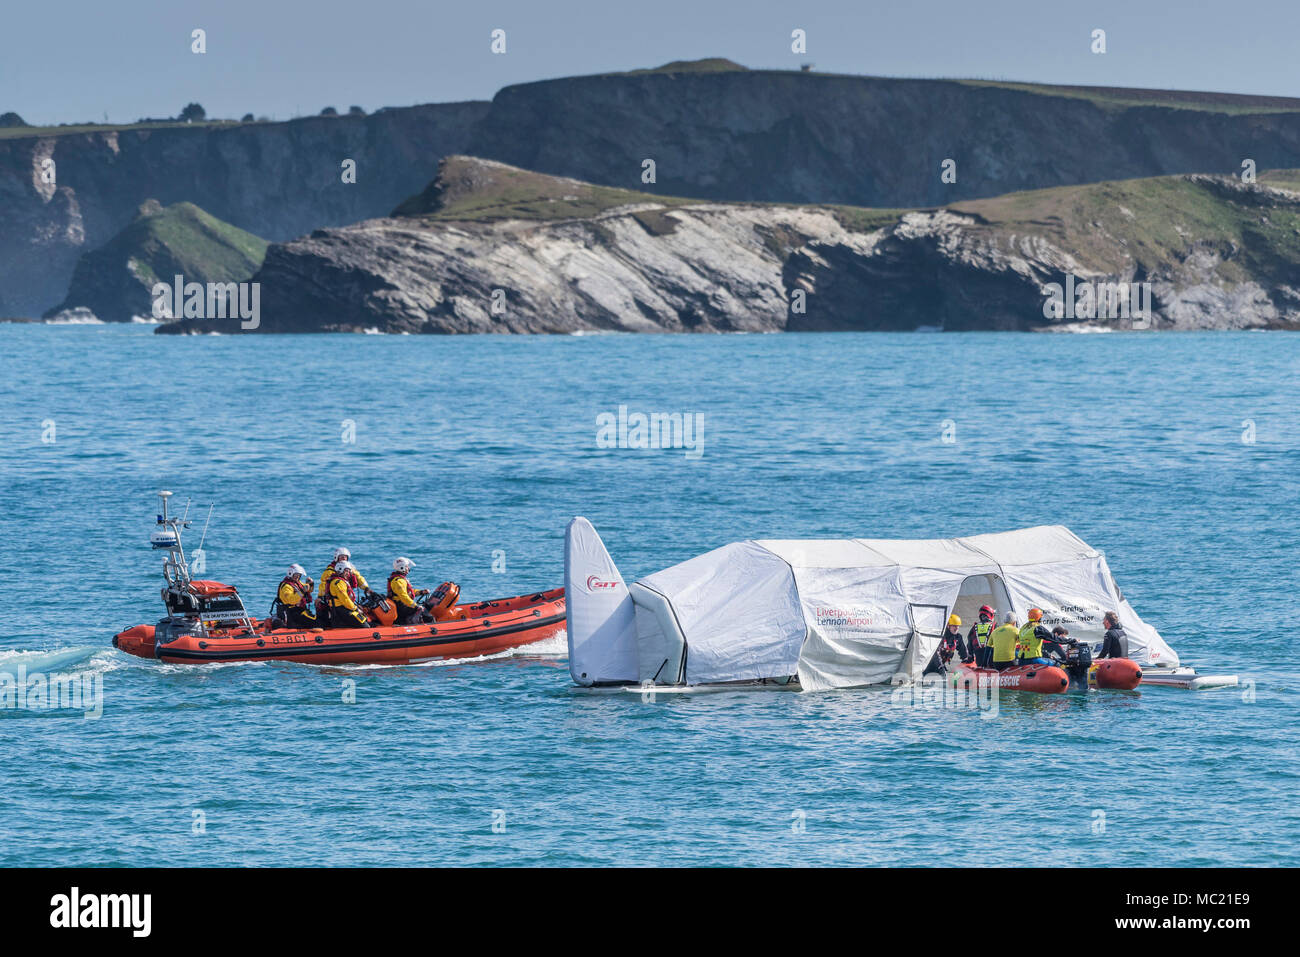 A Rescue and Firefighting Aircraft Simulator floating on the sea and being used in a GMICE (Good Medicine in Challenging Environments) major incident  - Stock Image